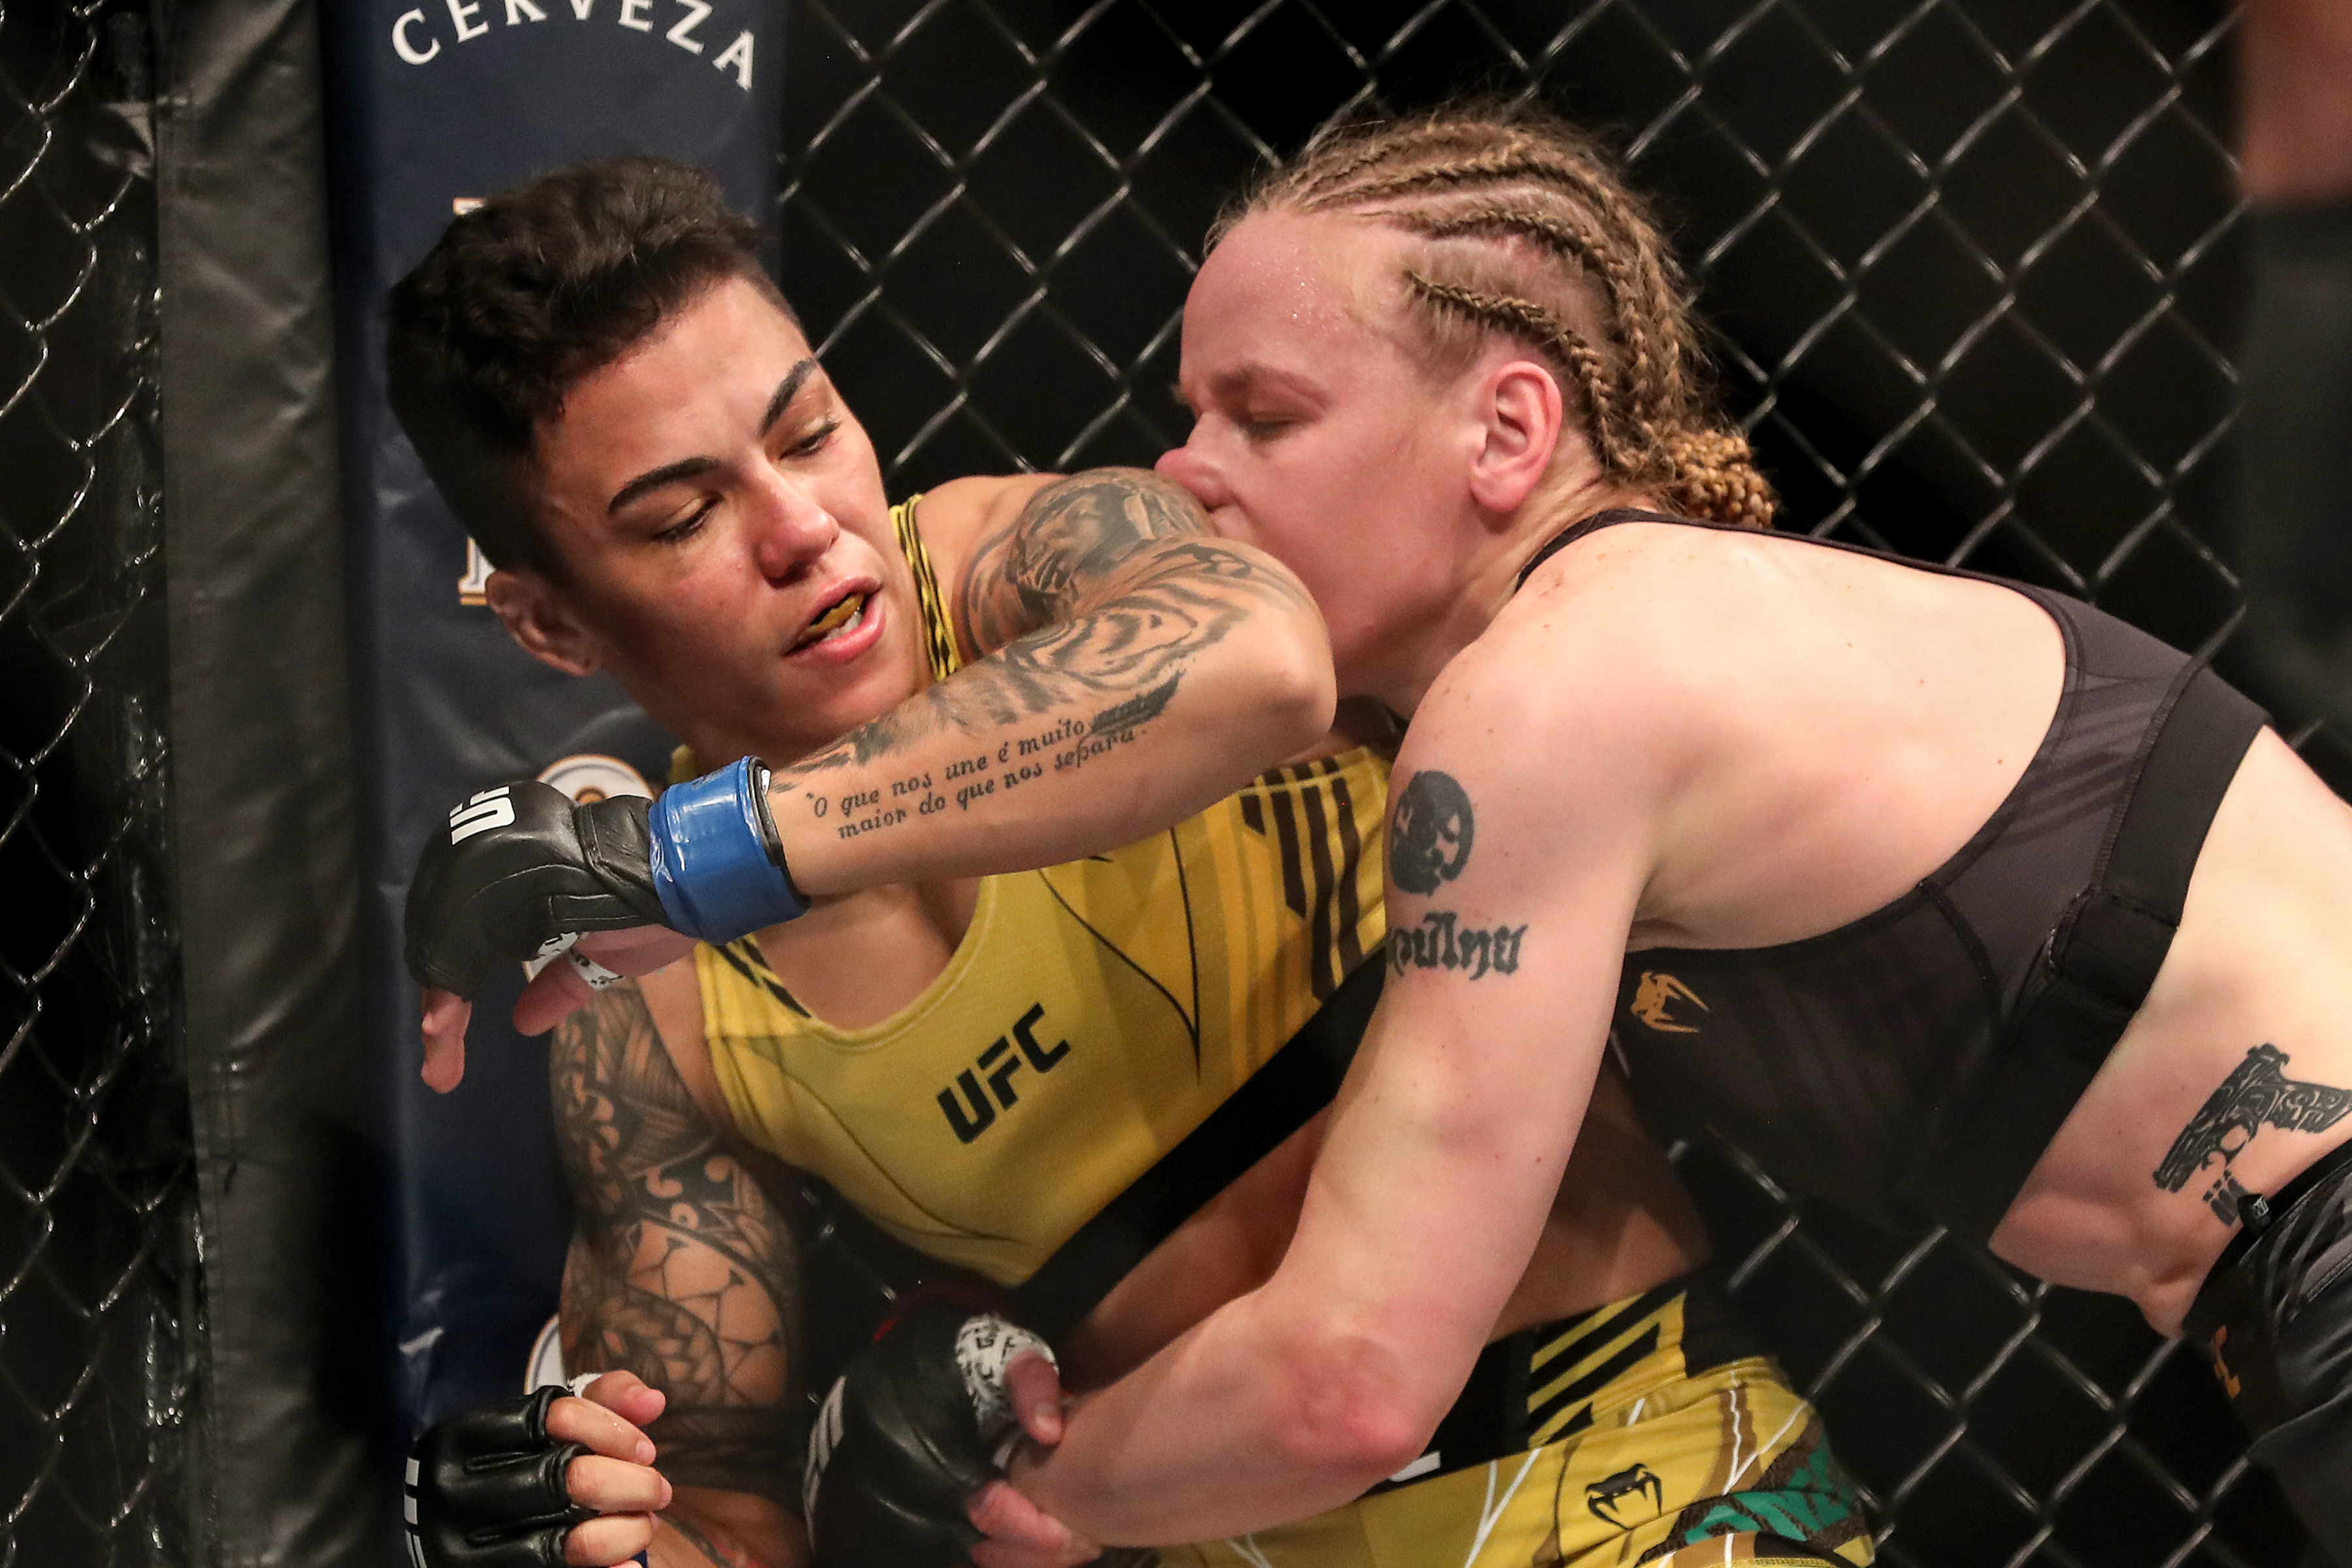 Valentina Shevchenko of Kyrgystan takes an elbow from Jessica Andrade of Brazil during the Women's Flyweight Title bout of UFC 261 at VyStar Veterans Memorial Arena